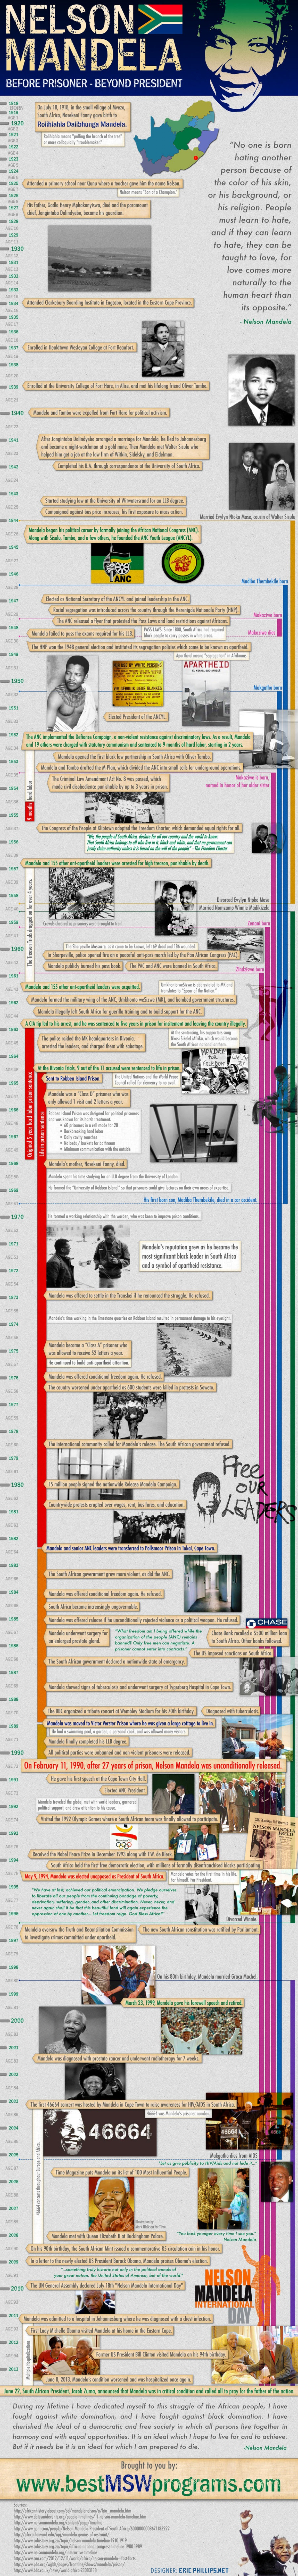 The life of Nelson Mandela Infographic